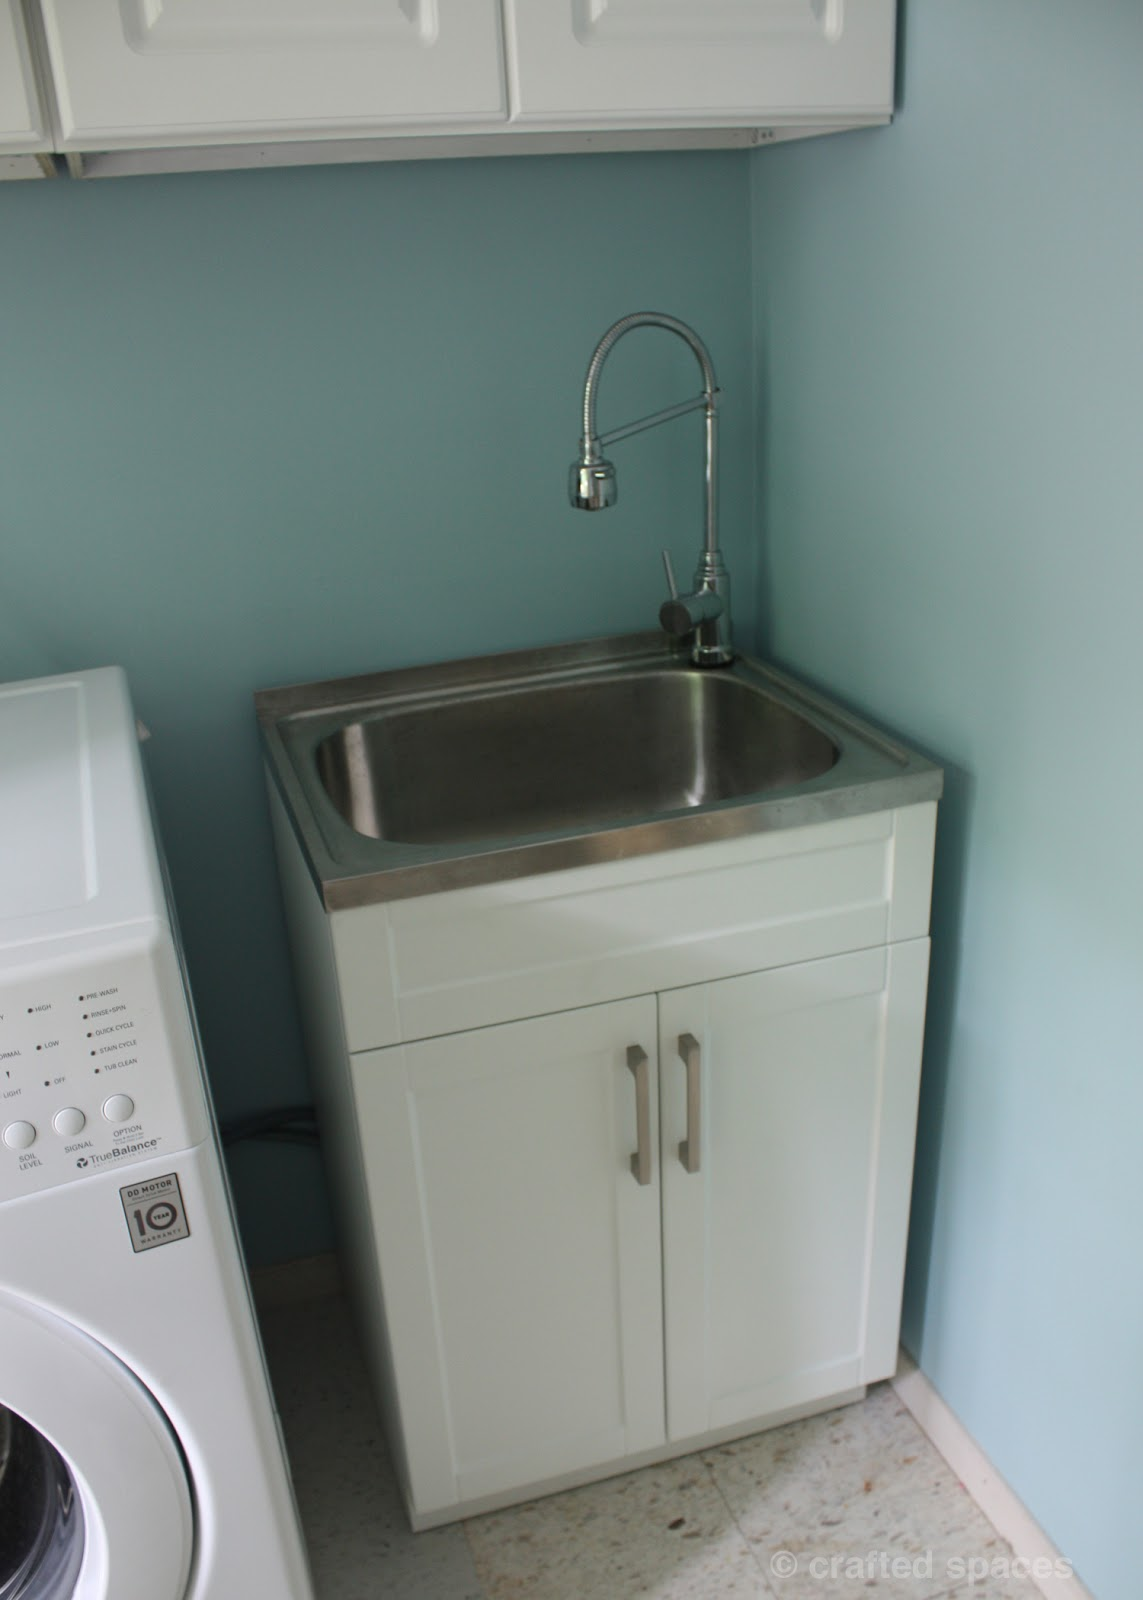 Utility Room Sink : We were really happy to get this wonderful sink. It is deep enough to ...